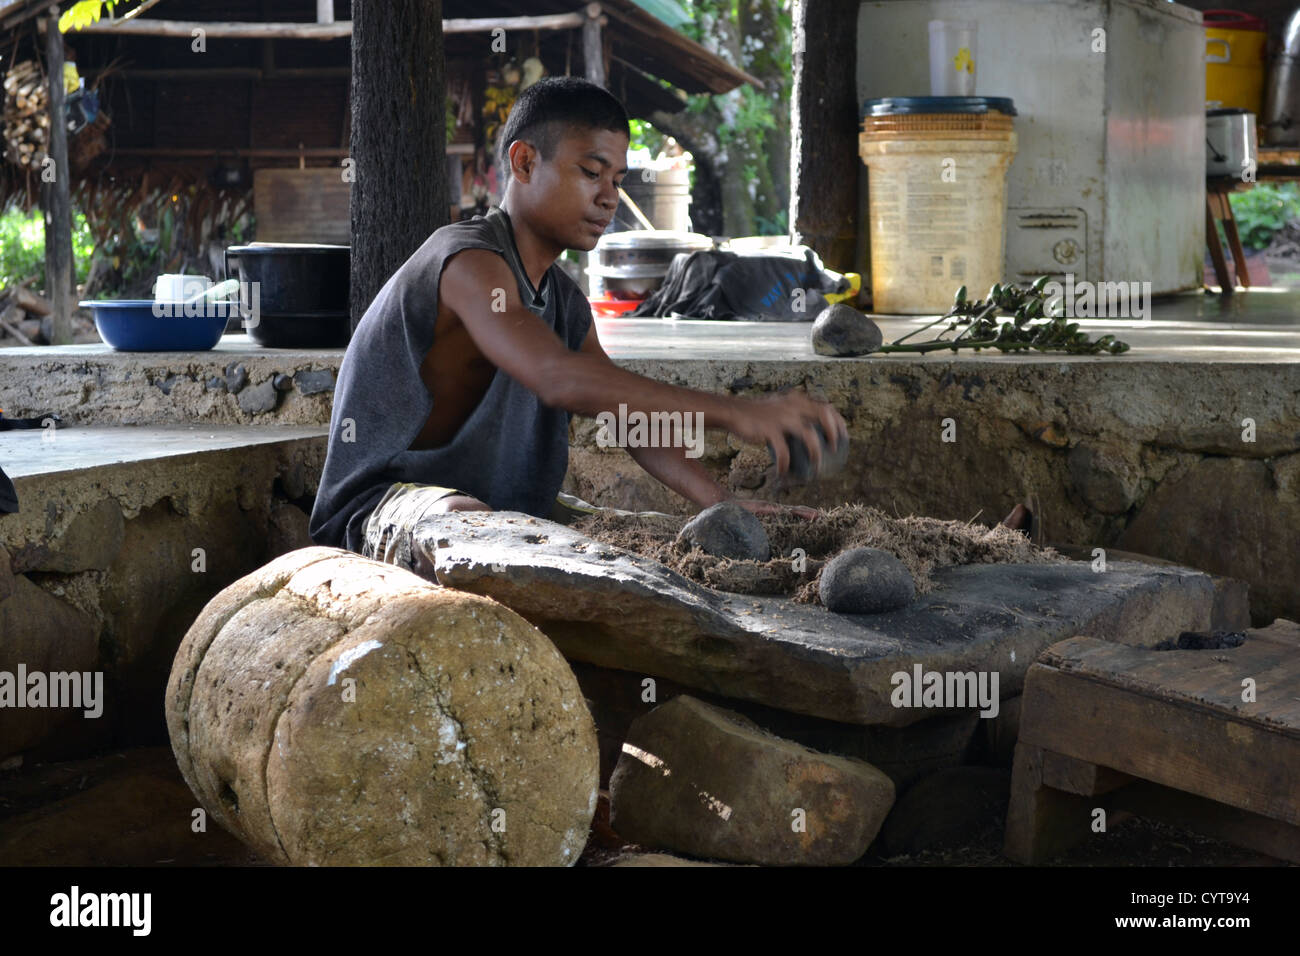 Preparation of Sakau, traditional Micronesian beverage, Madolenihmw Province, Pohnpei, Federated States of Micronesia - Stock Image